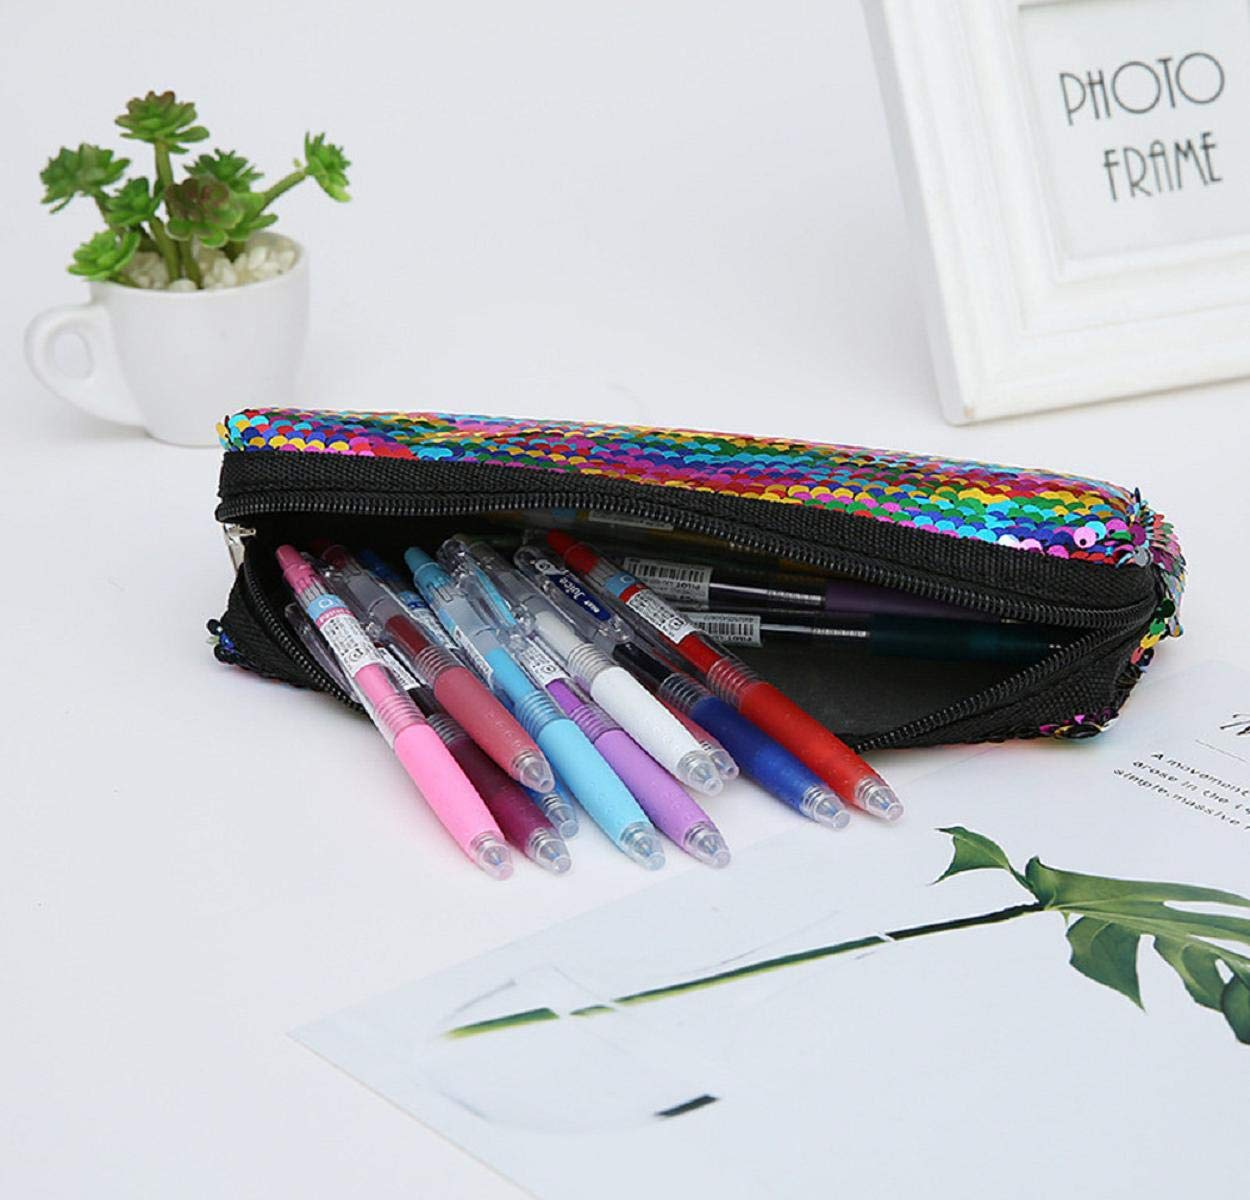 Boddenly Pencil Bags - Pencil Pouch Organizers for Home and Office, Ideal for Students, Travel Cosmetic Makeup Bag for Women, 6 Designs by Boddenly (Image #2)